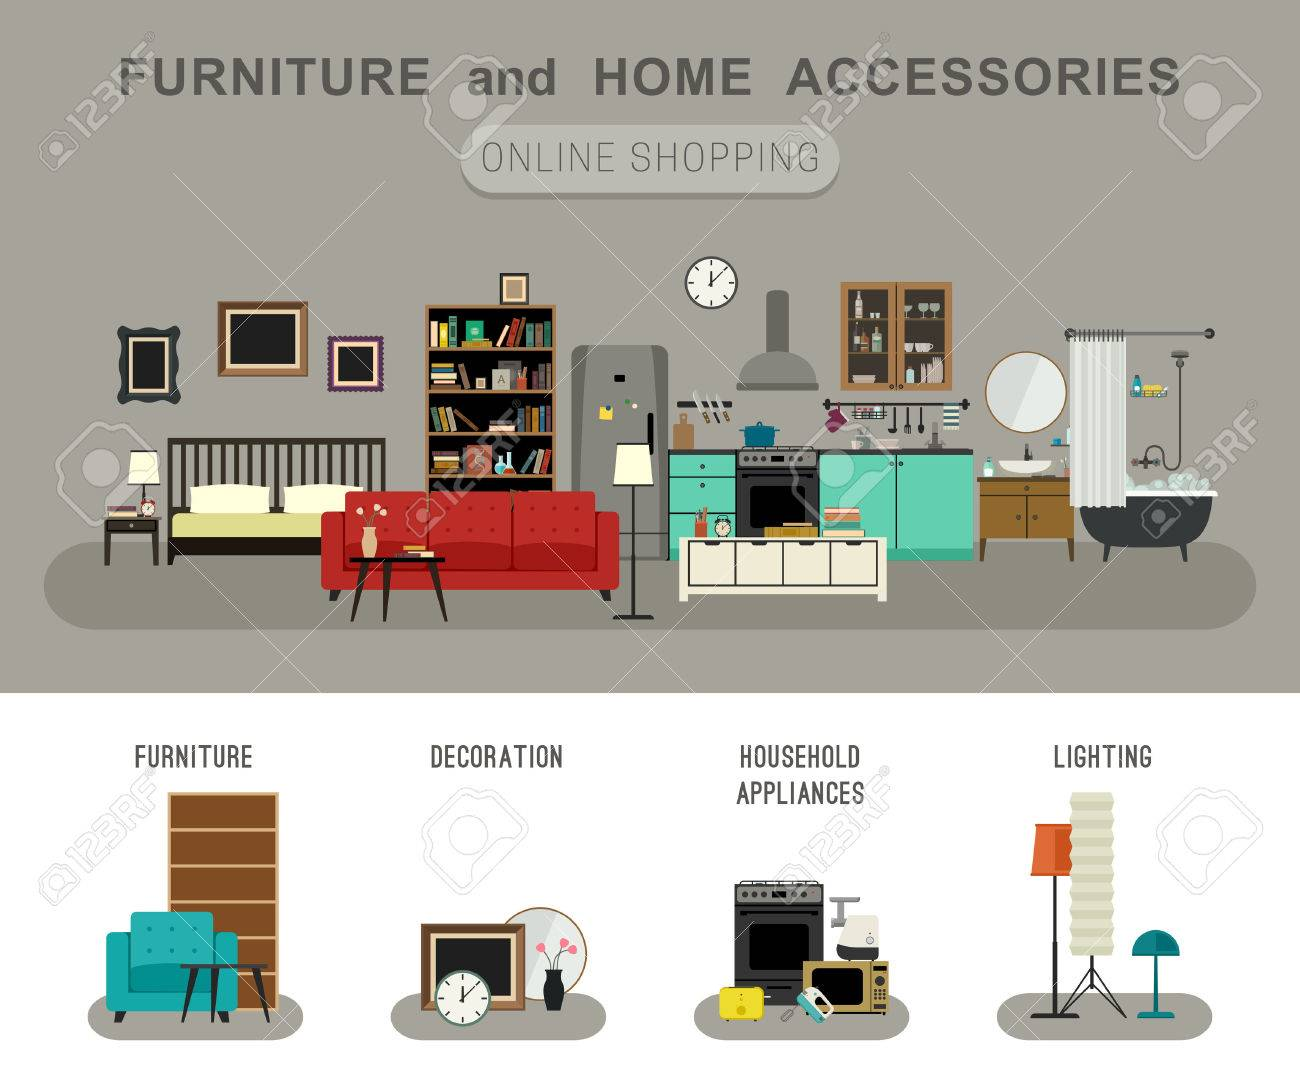 Home Accessories Furniture And Home Accessories Banner With Vector Flat Icons Sofa Bookshelf